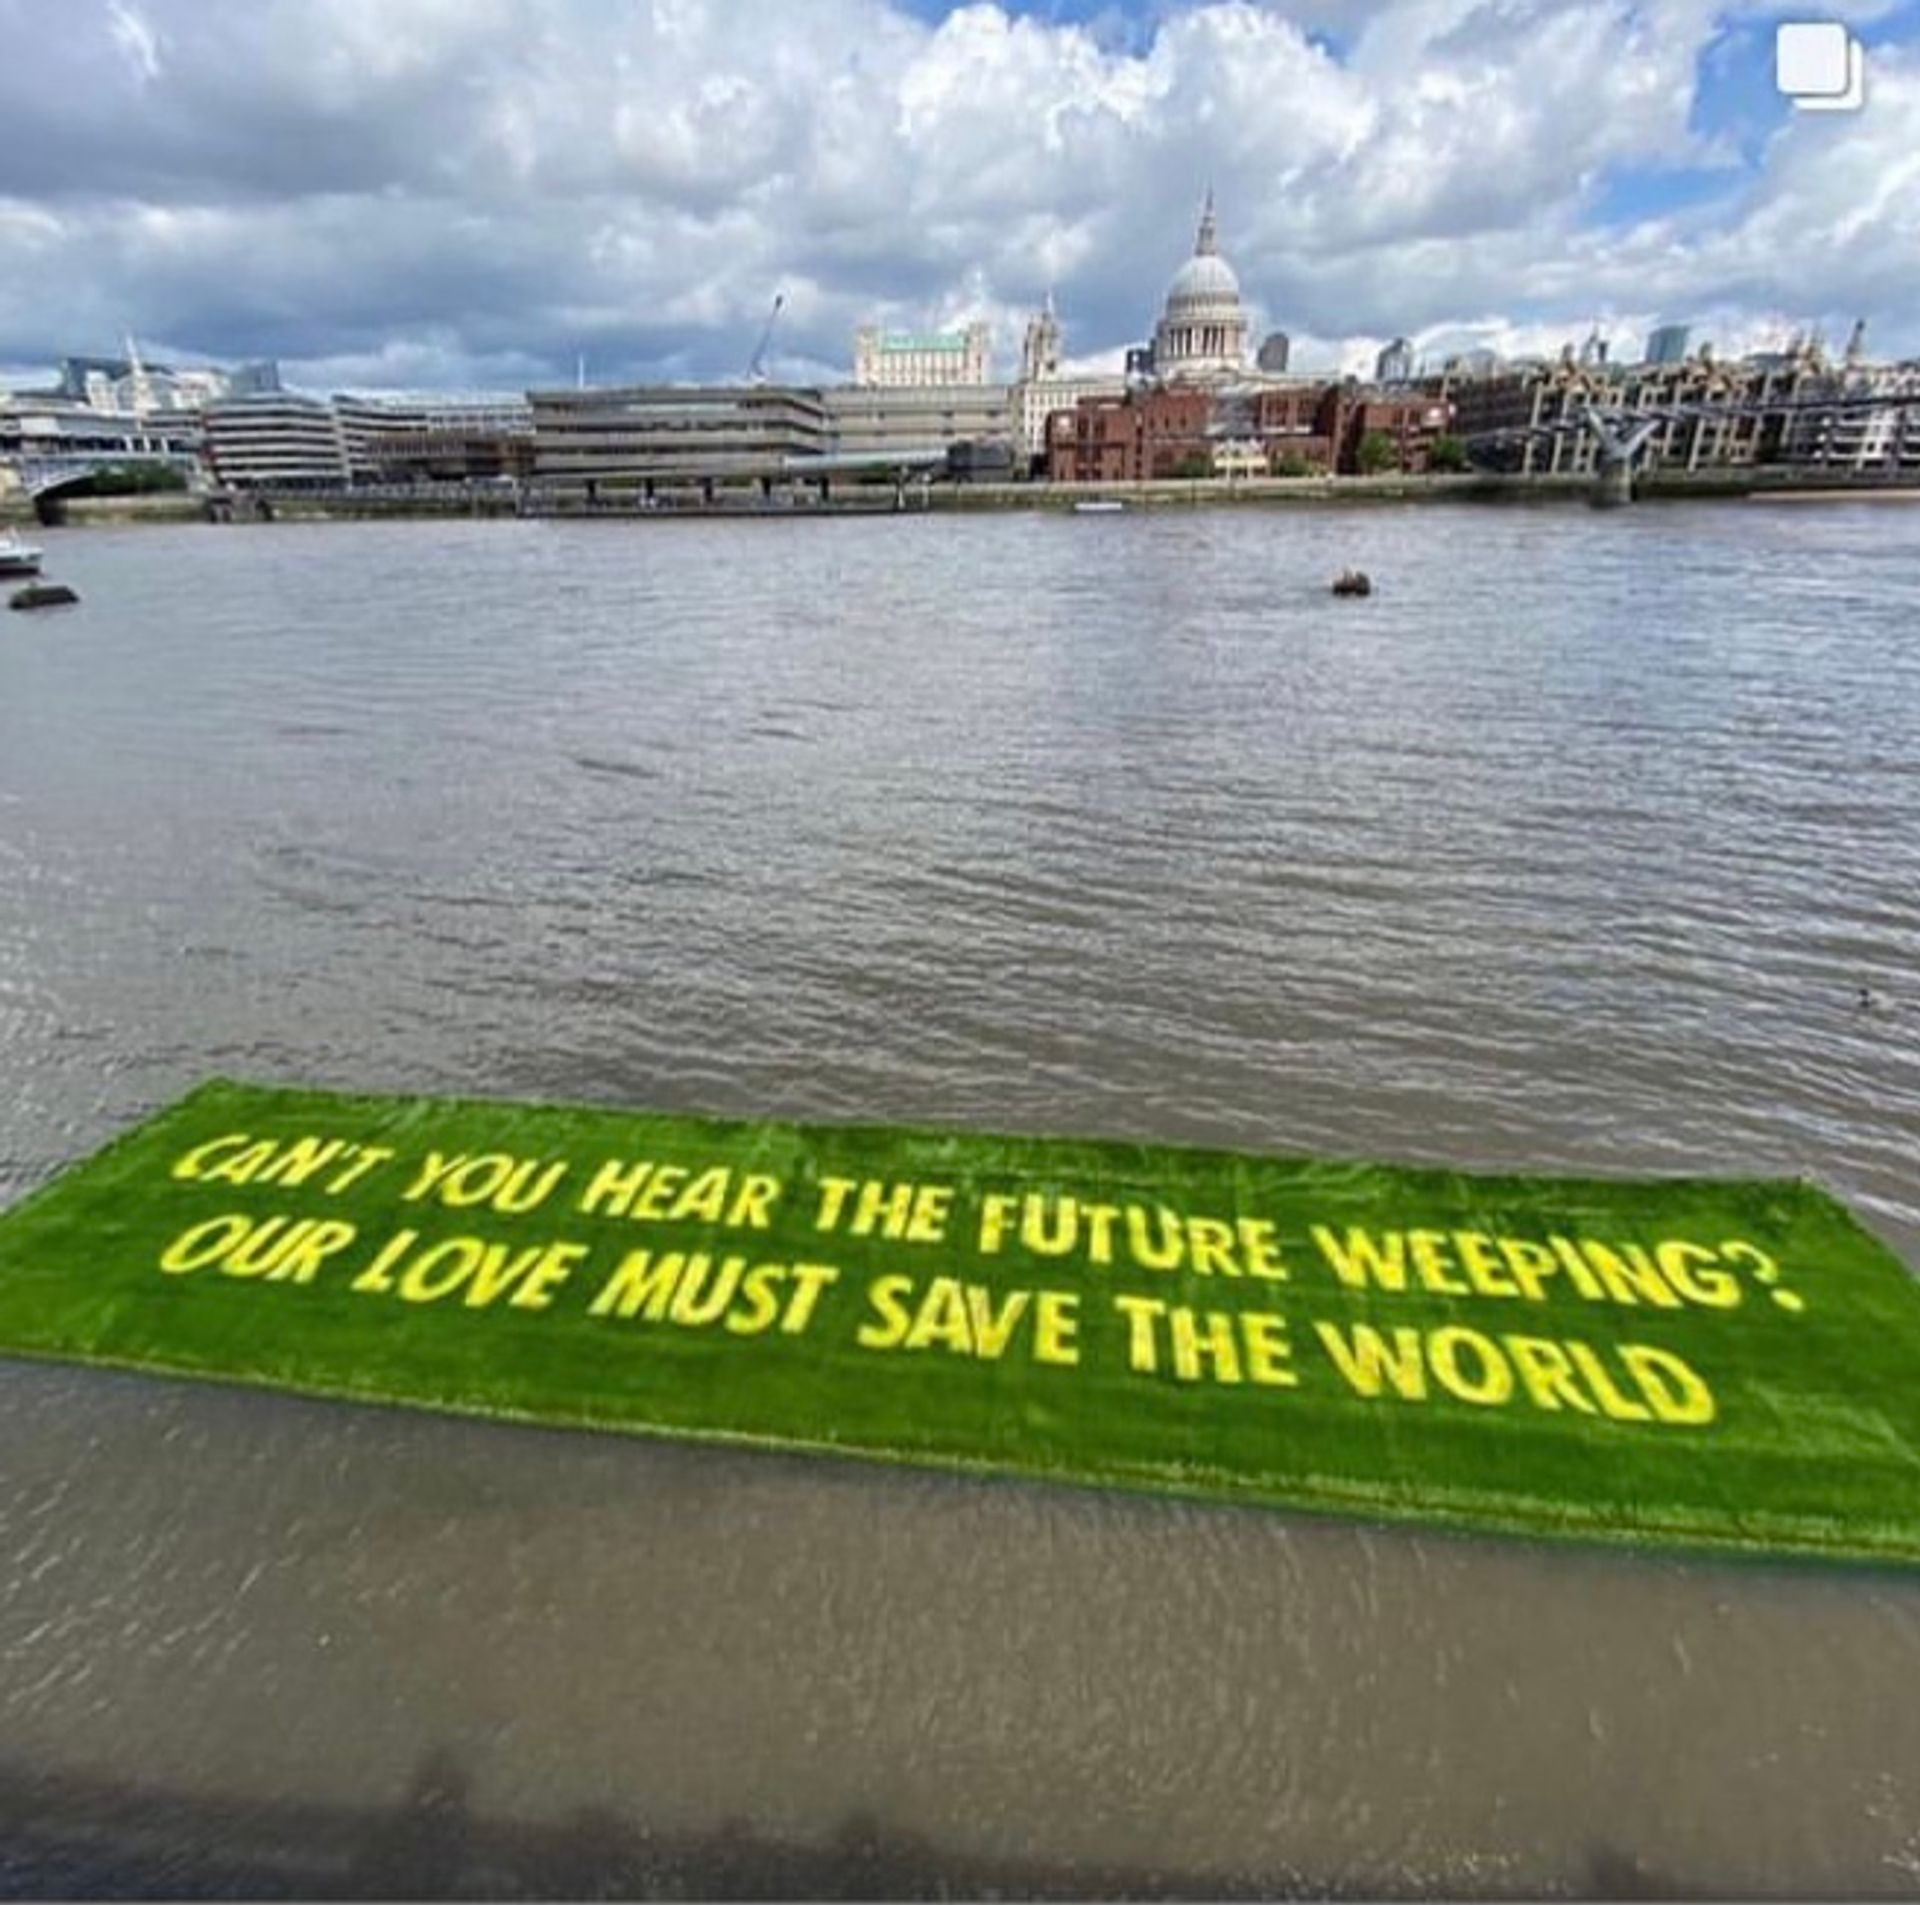 On The Shore (2021) by Ackroyd & Harvey and Ben Okri was floated into the River Thames last week Courtesy of Louisa Buck